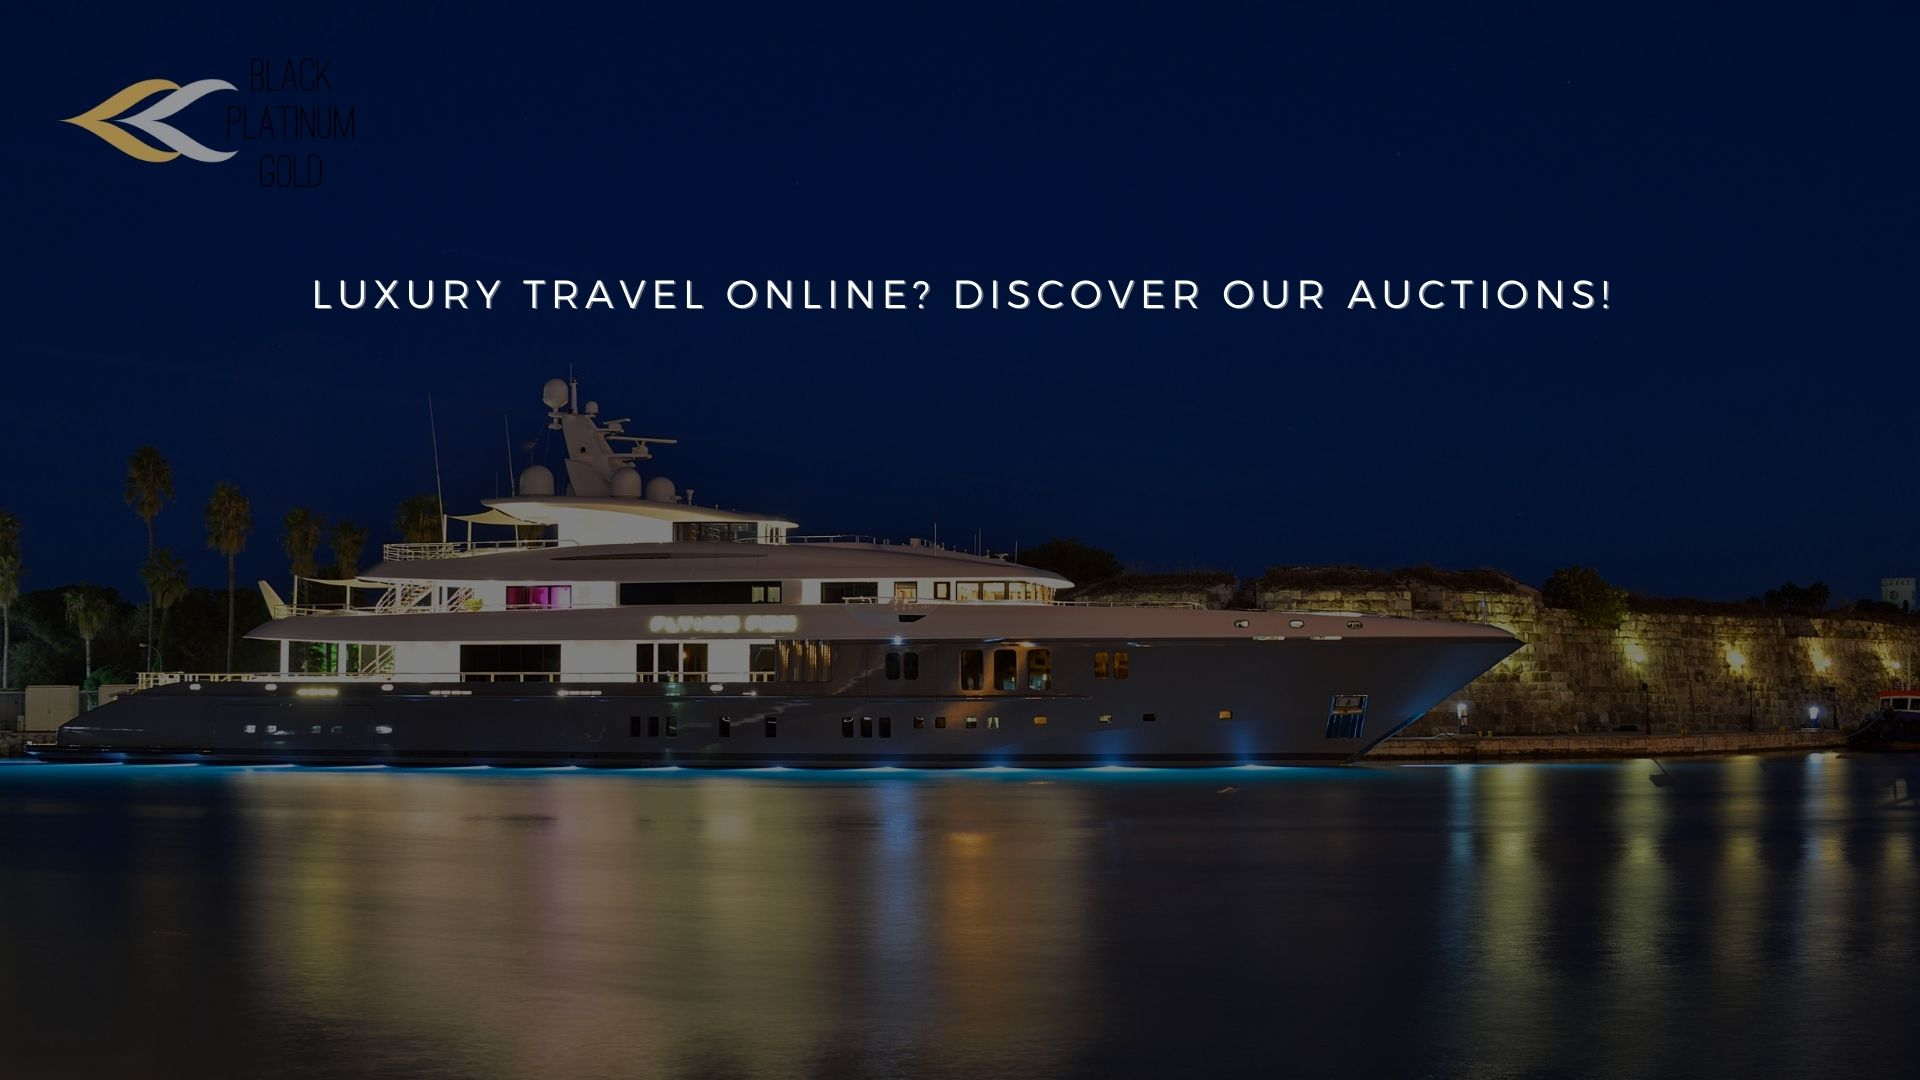 Luxury Travel online? Discover our Auctions!